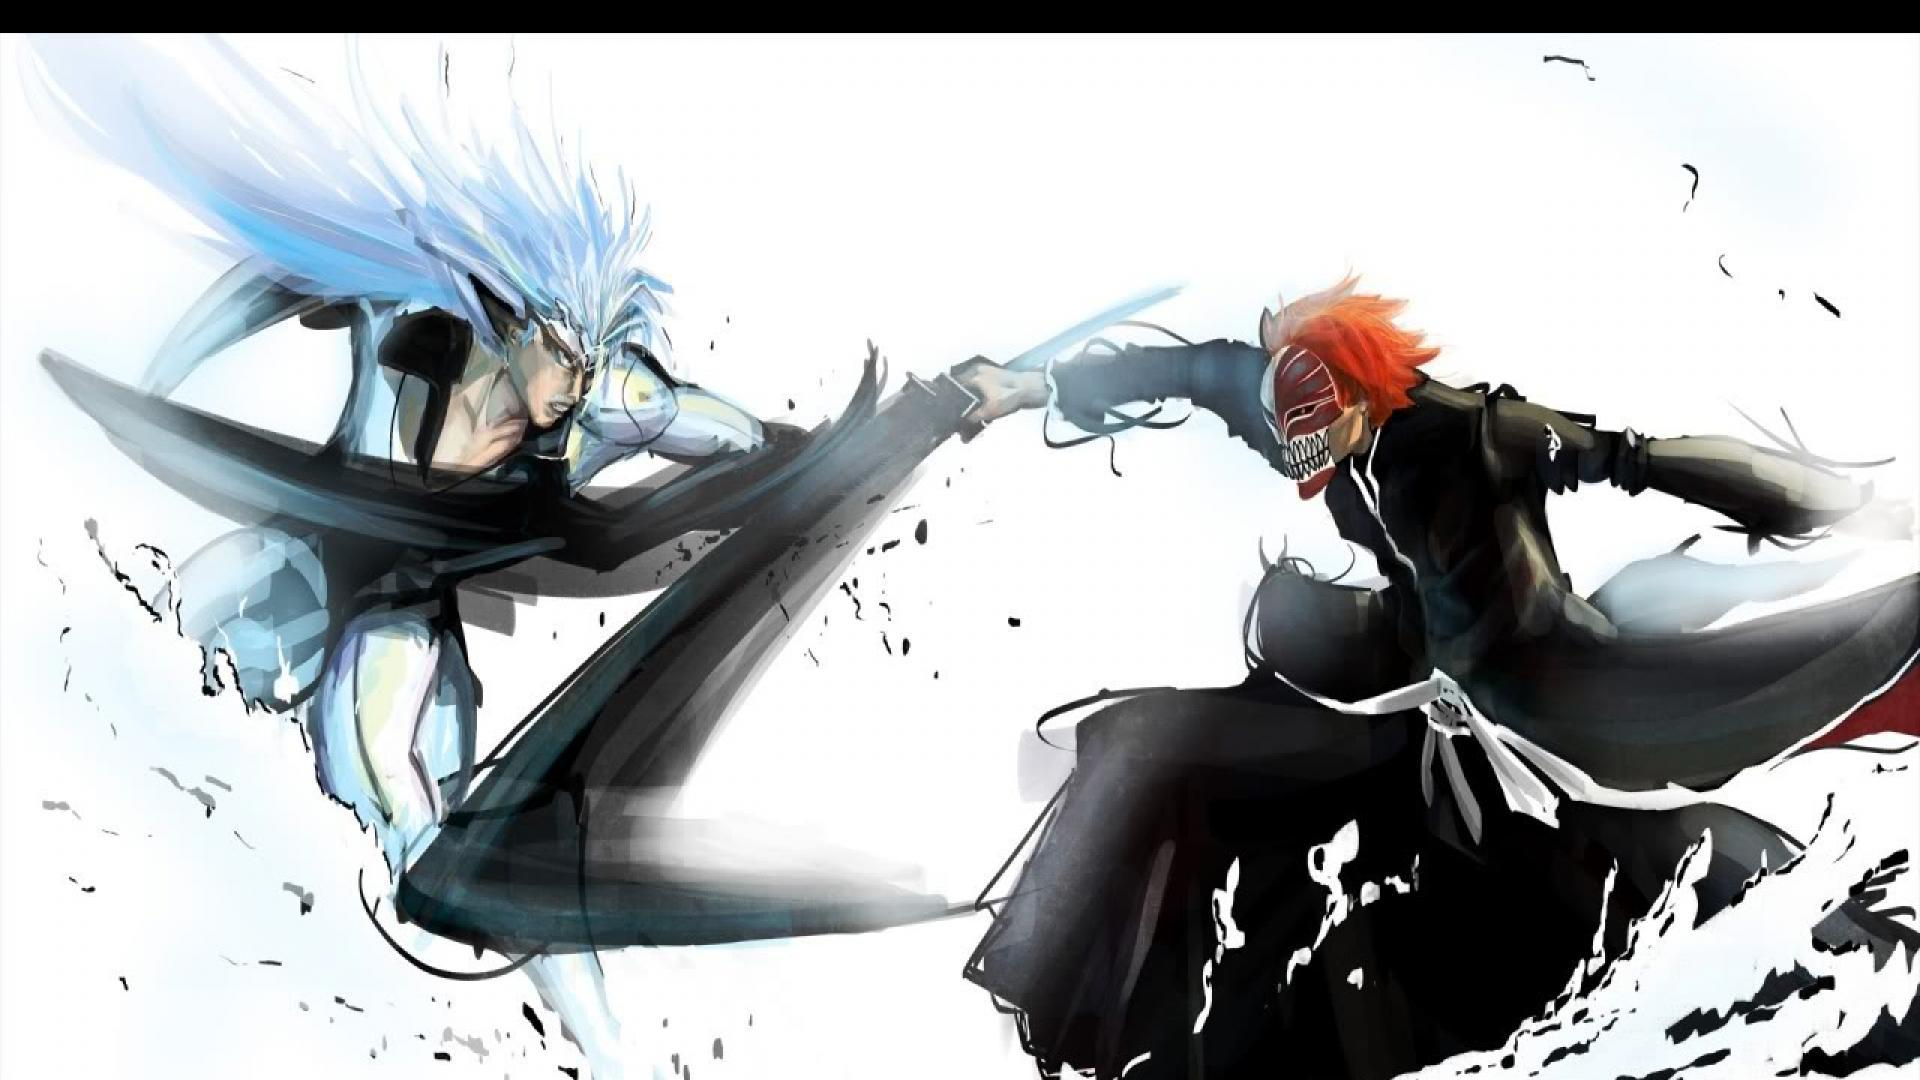 bleach wallpaper 1920 x 1080 - photo #23